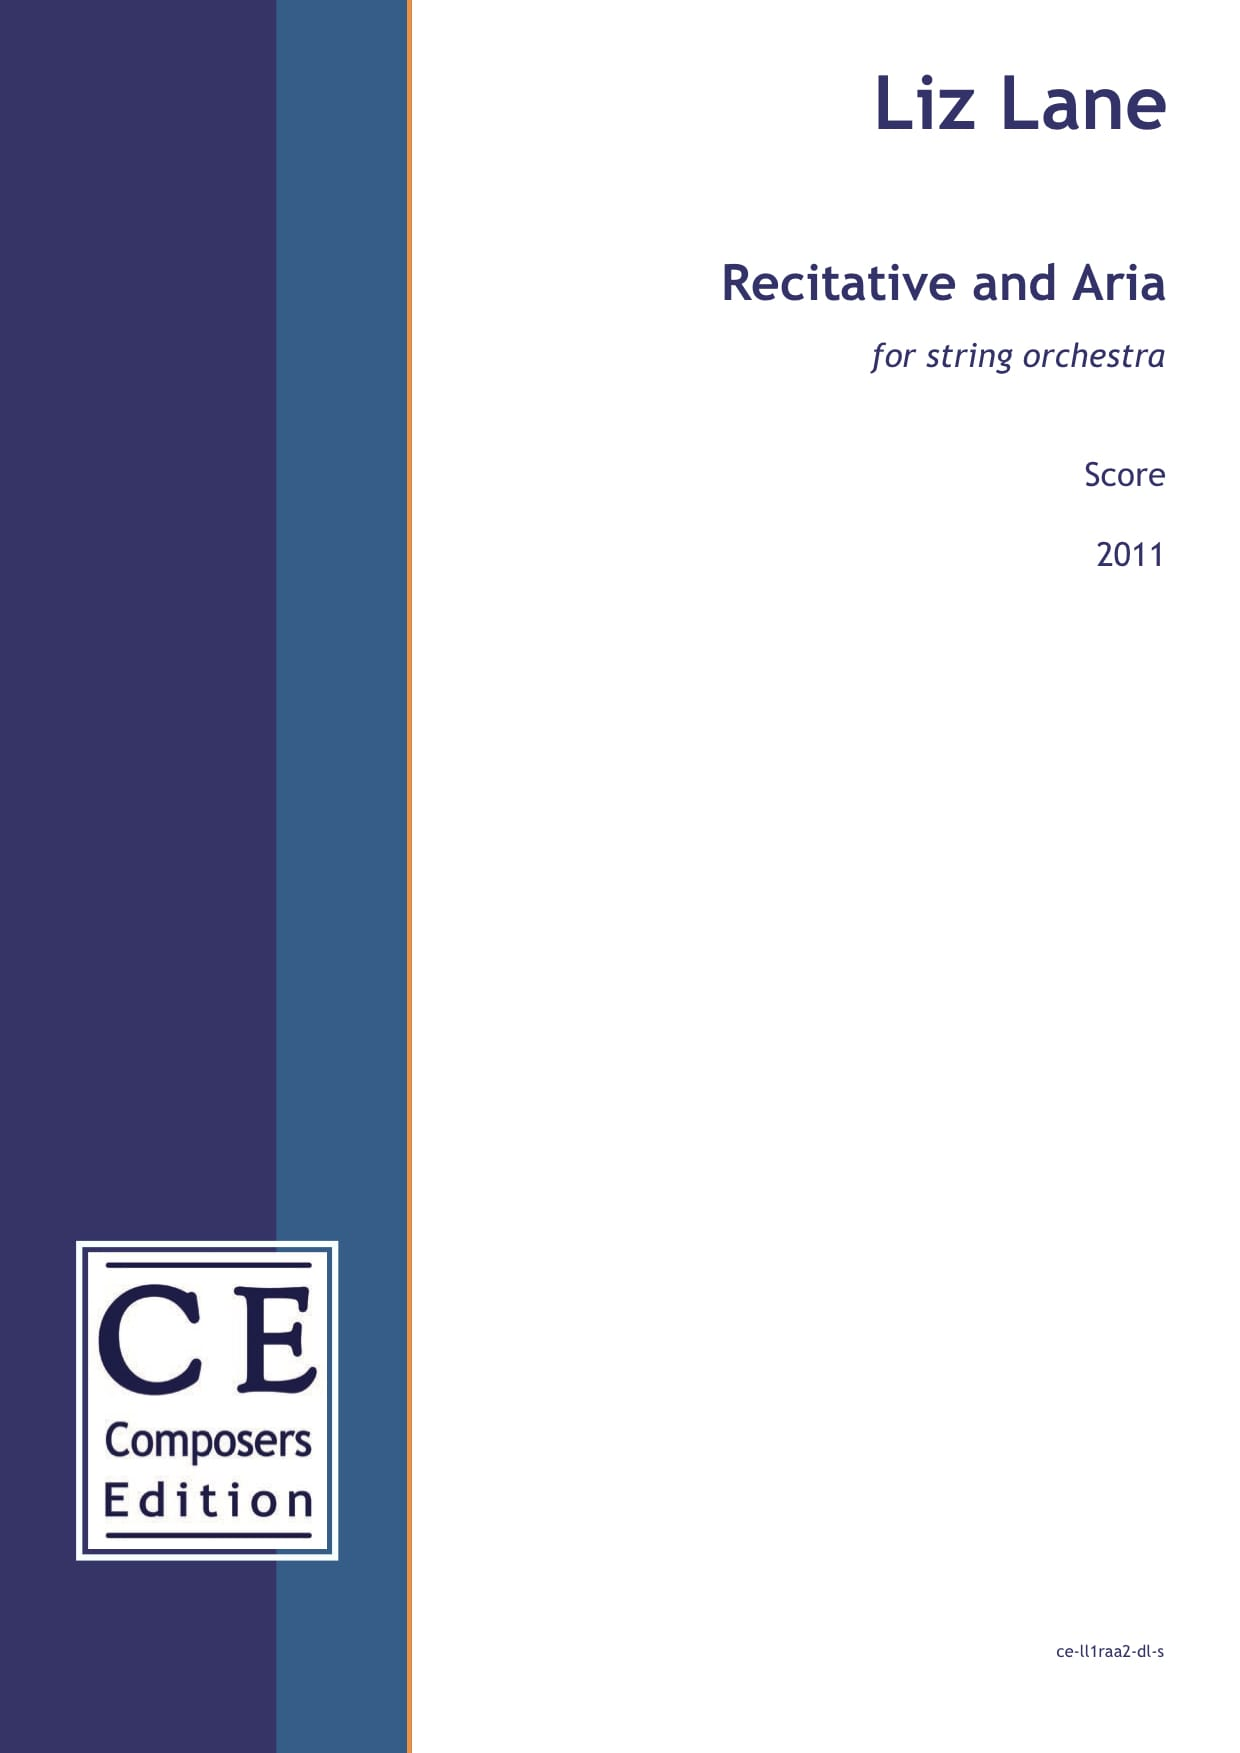 Liz Lane: Recitative and Aria (string orchestra version) for string orchestra